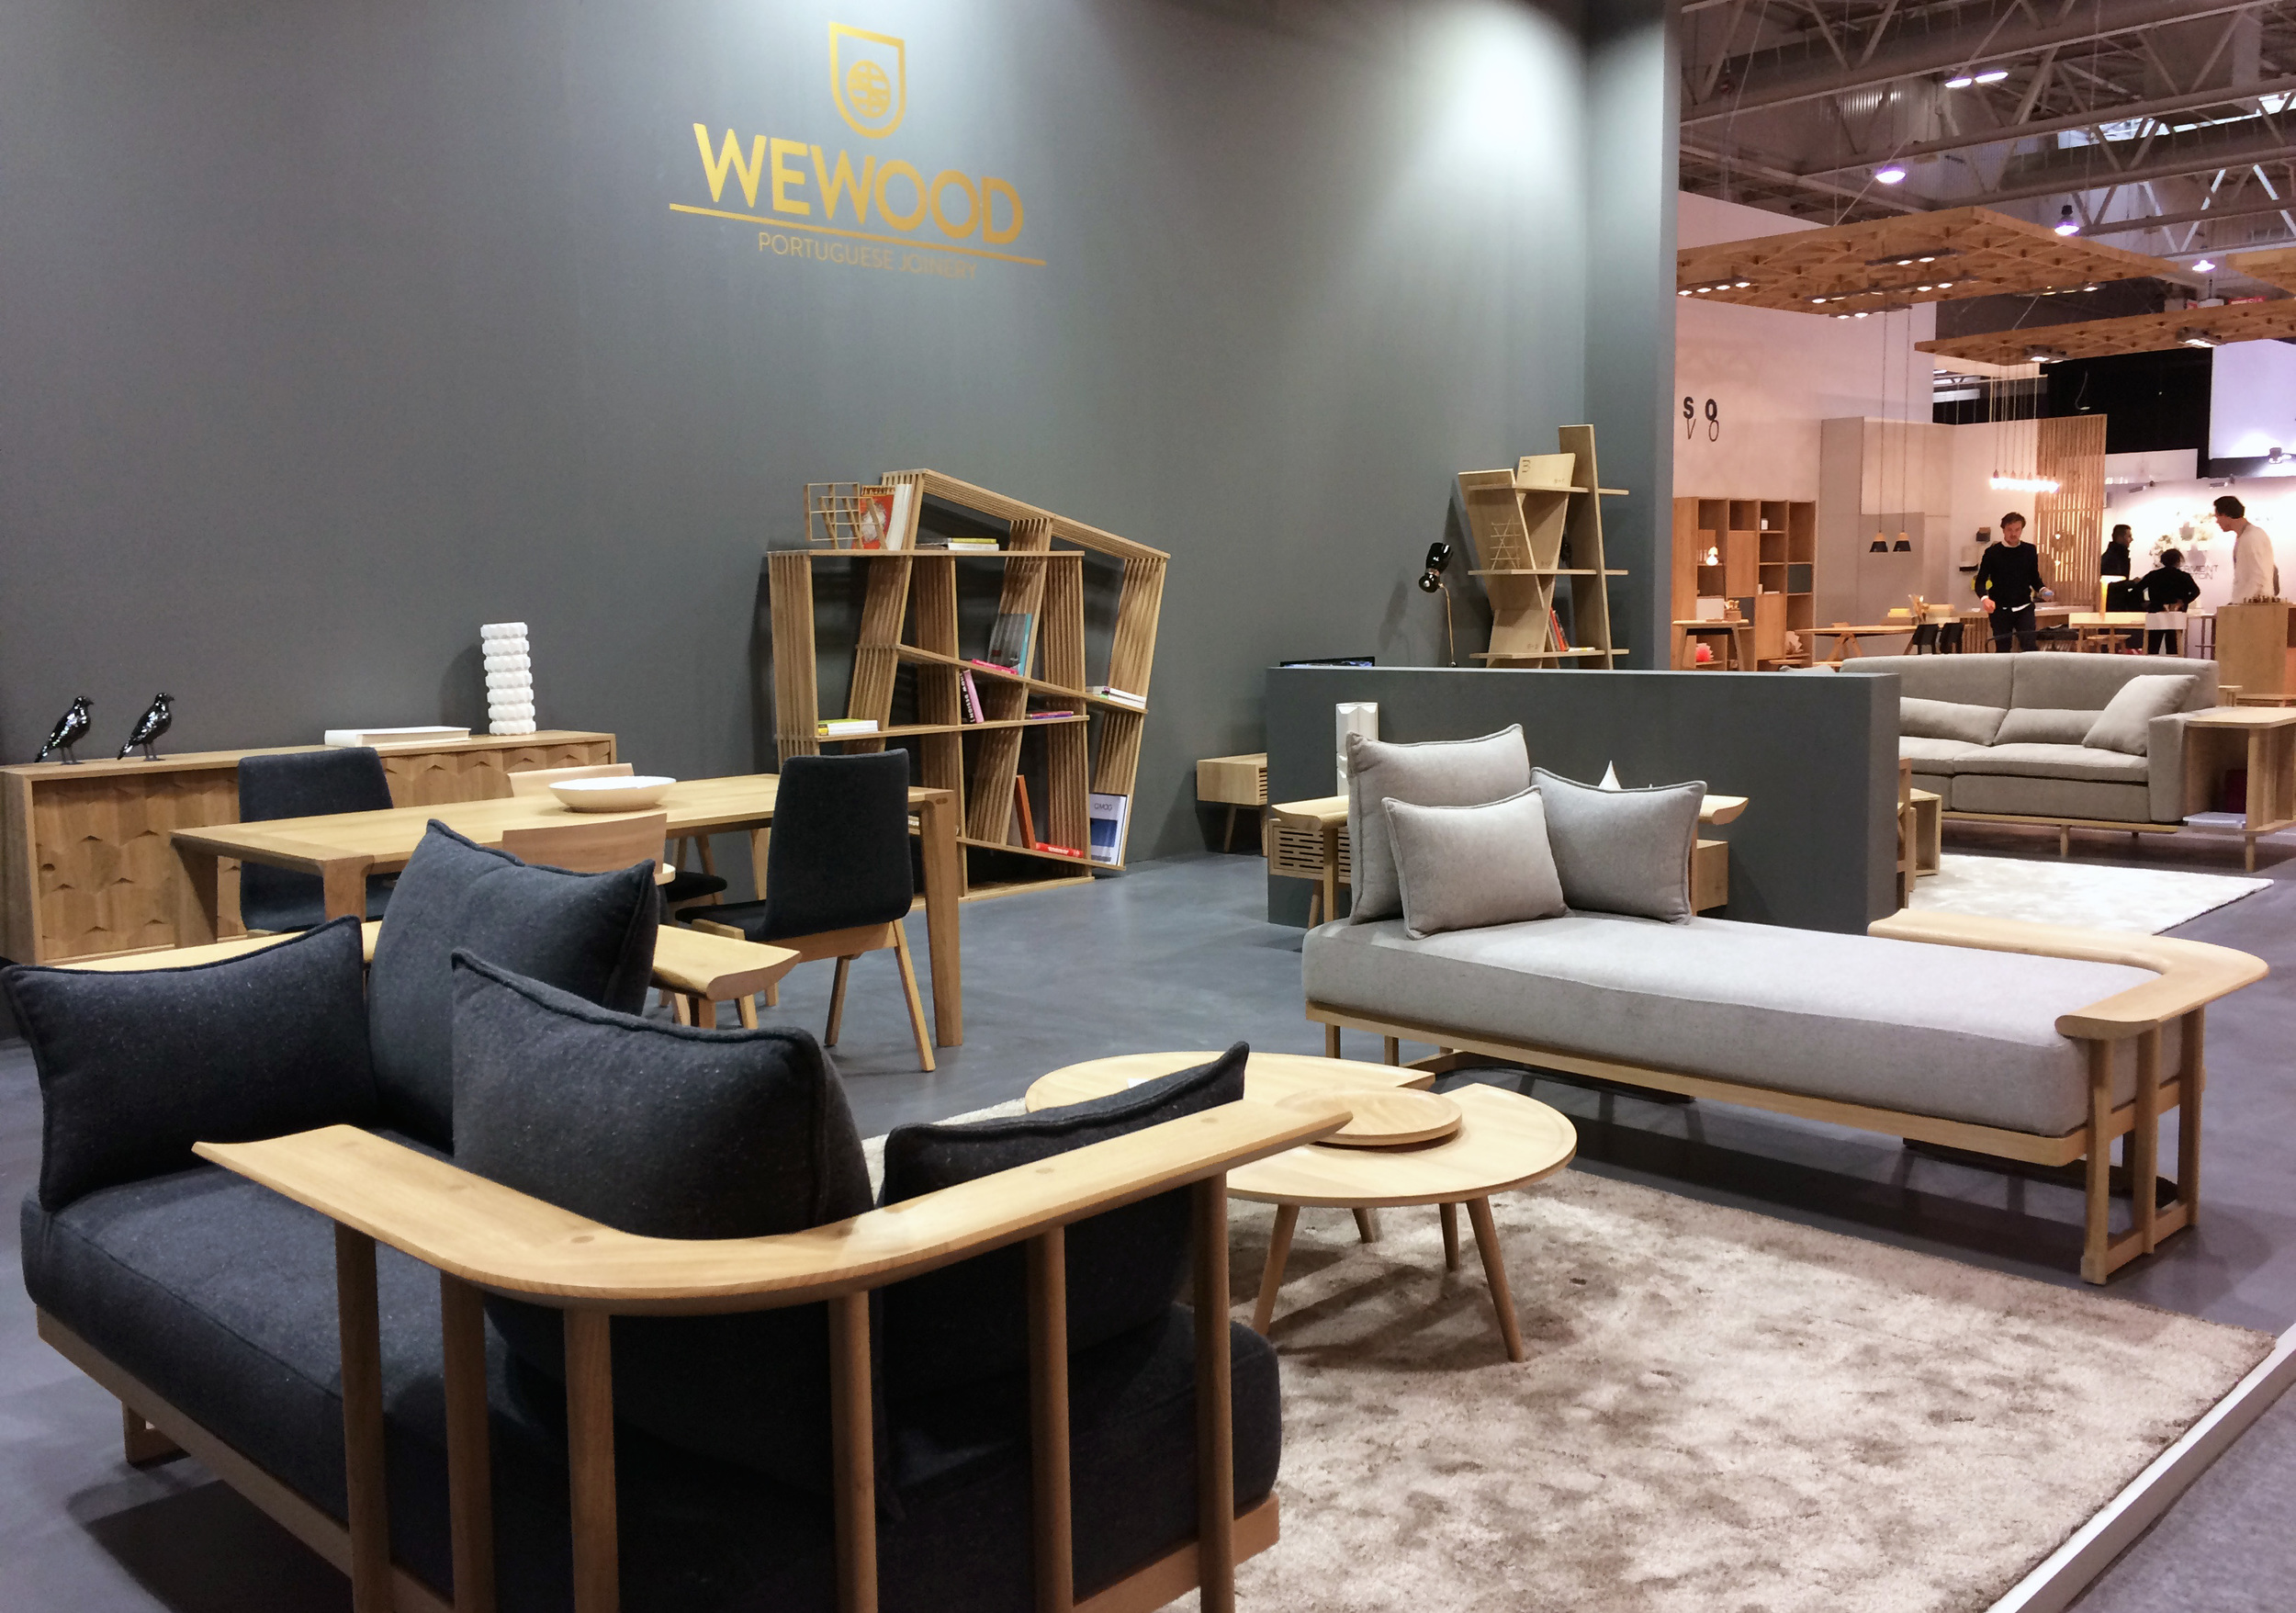 Established in 2012,  WEWOOD  elevates the  high-end joinery  by producing s uperb solid wood furniture  that promotes portuguese culture and design.